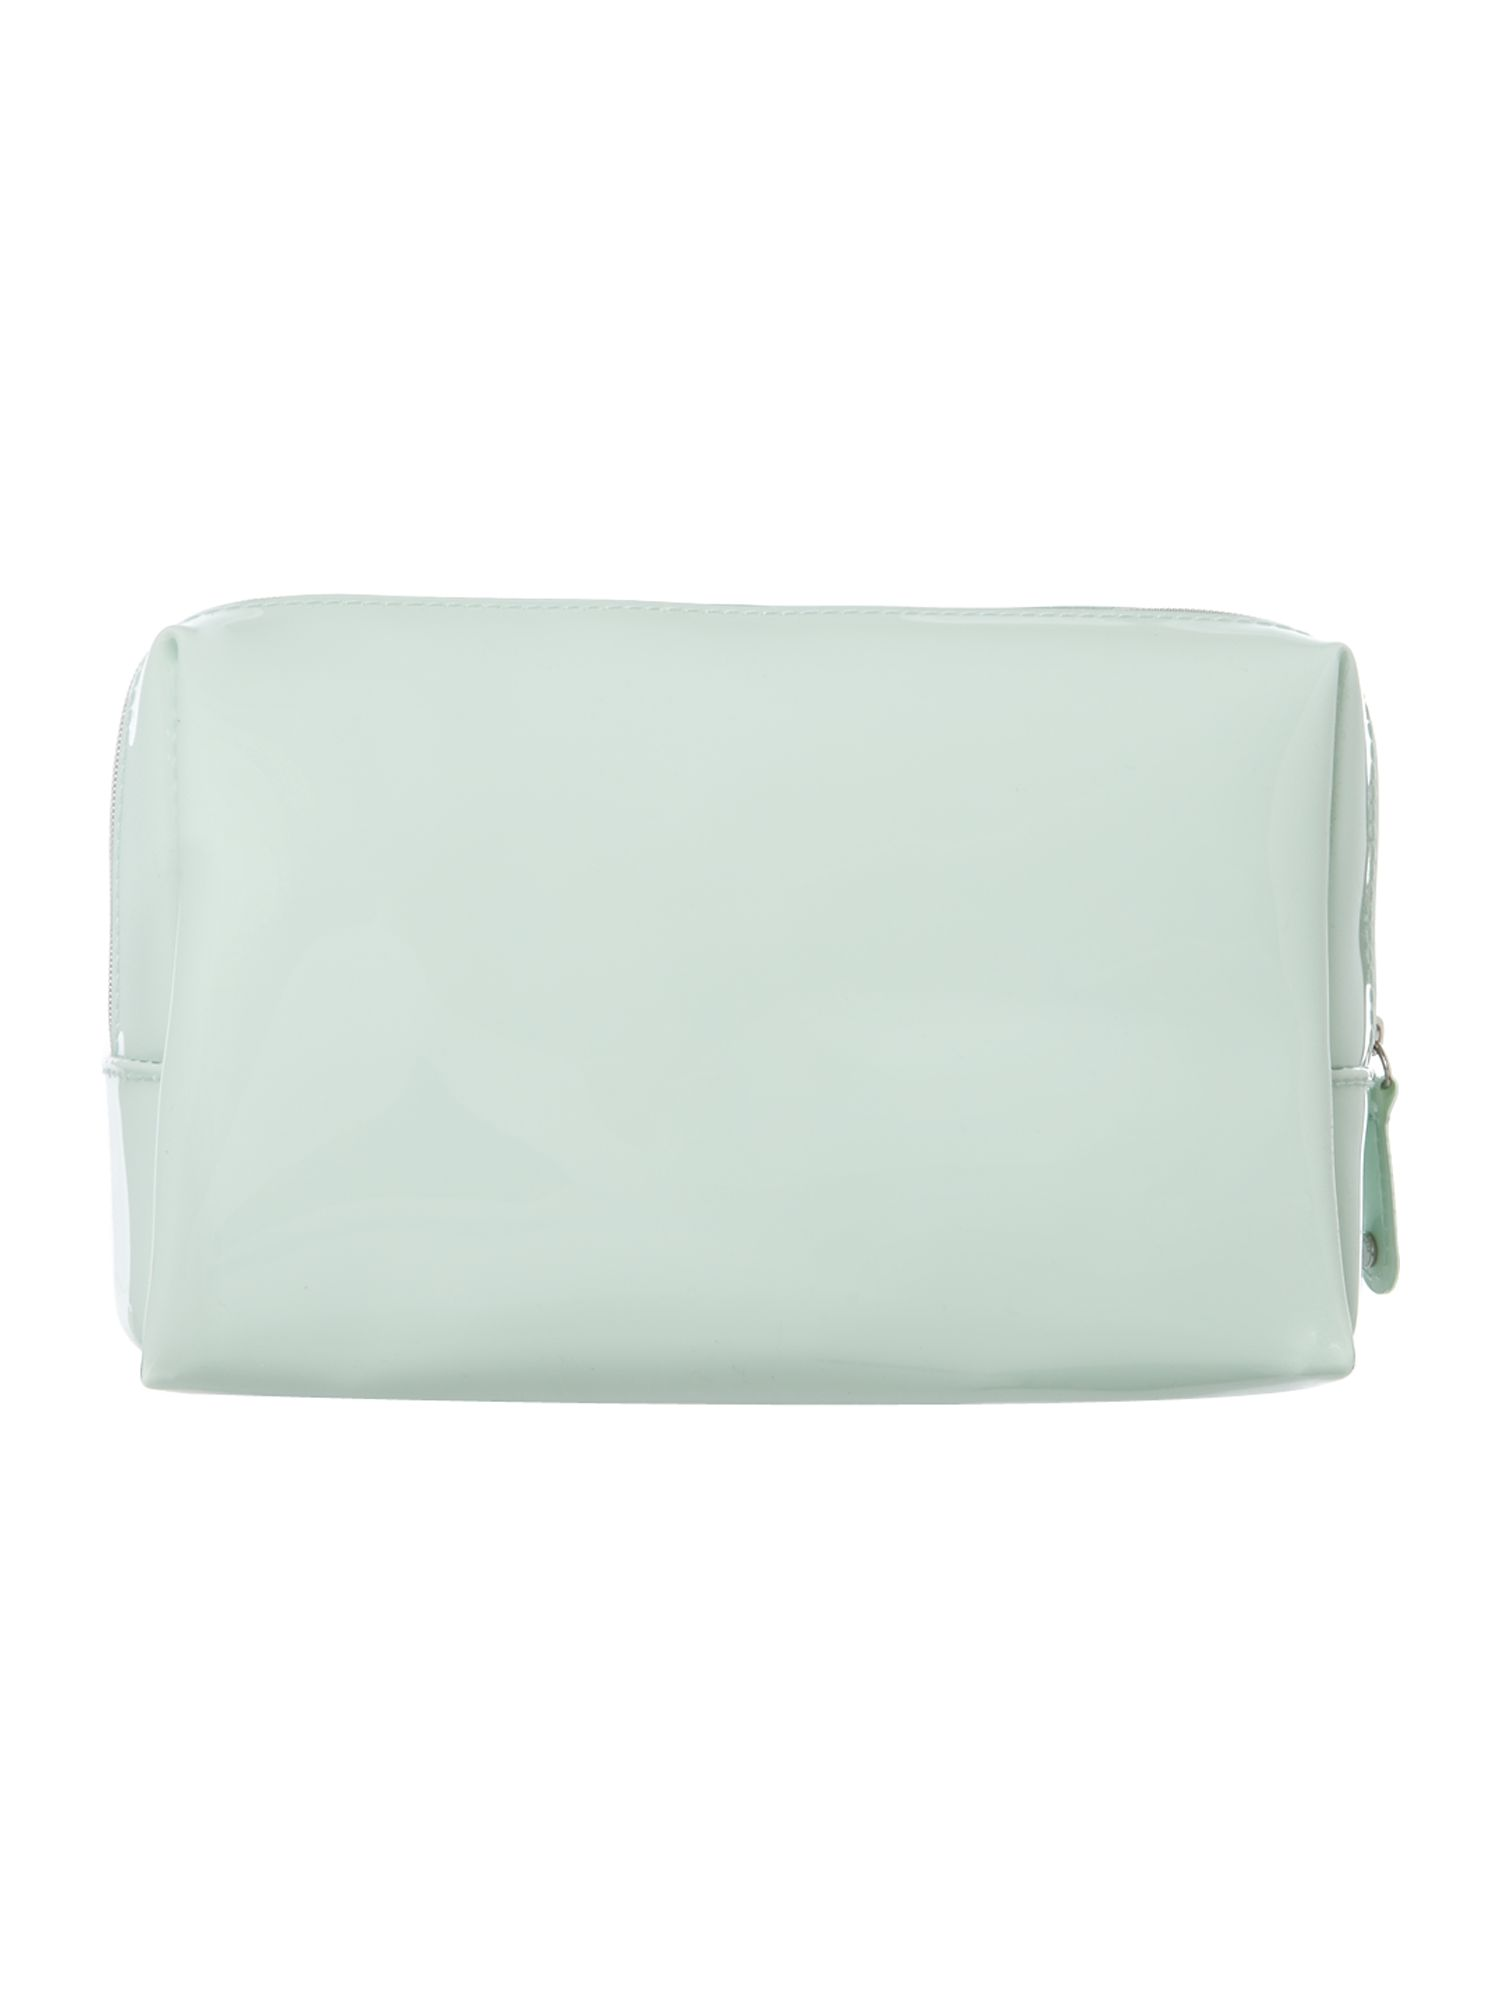 Large green cosmetics bag